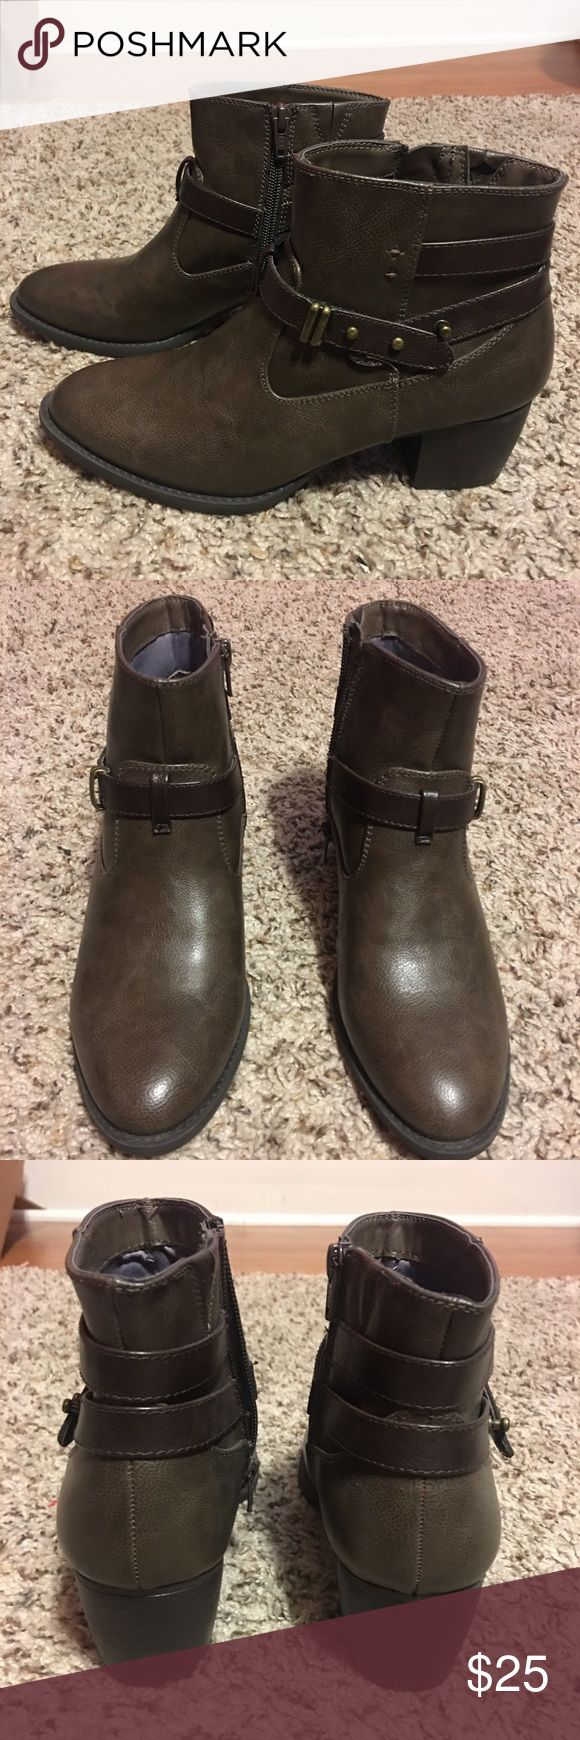 White Mountain Booties Brown White Mountain booties, excellent condition. Worn maybe once. No scratched, looks like never worn White Mountain Shoes Ankle Boots & Booties